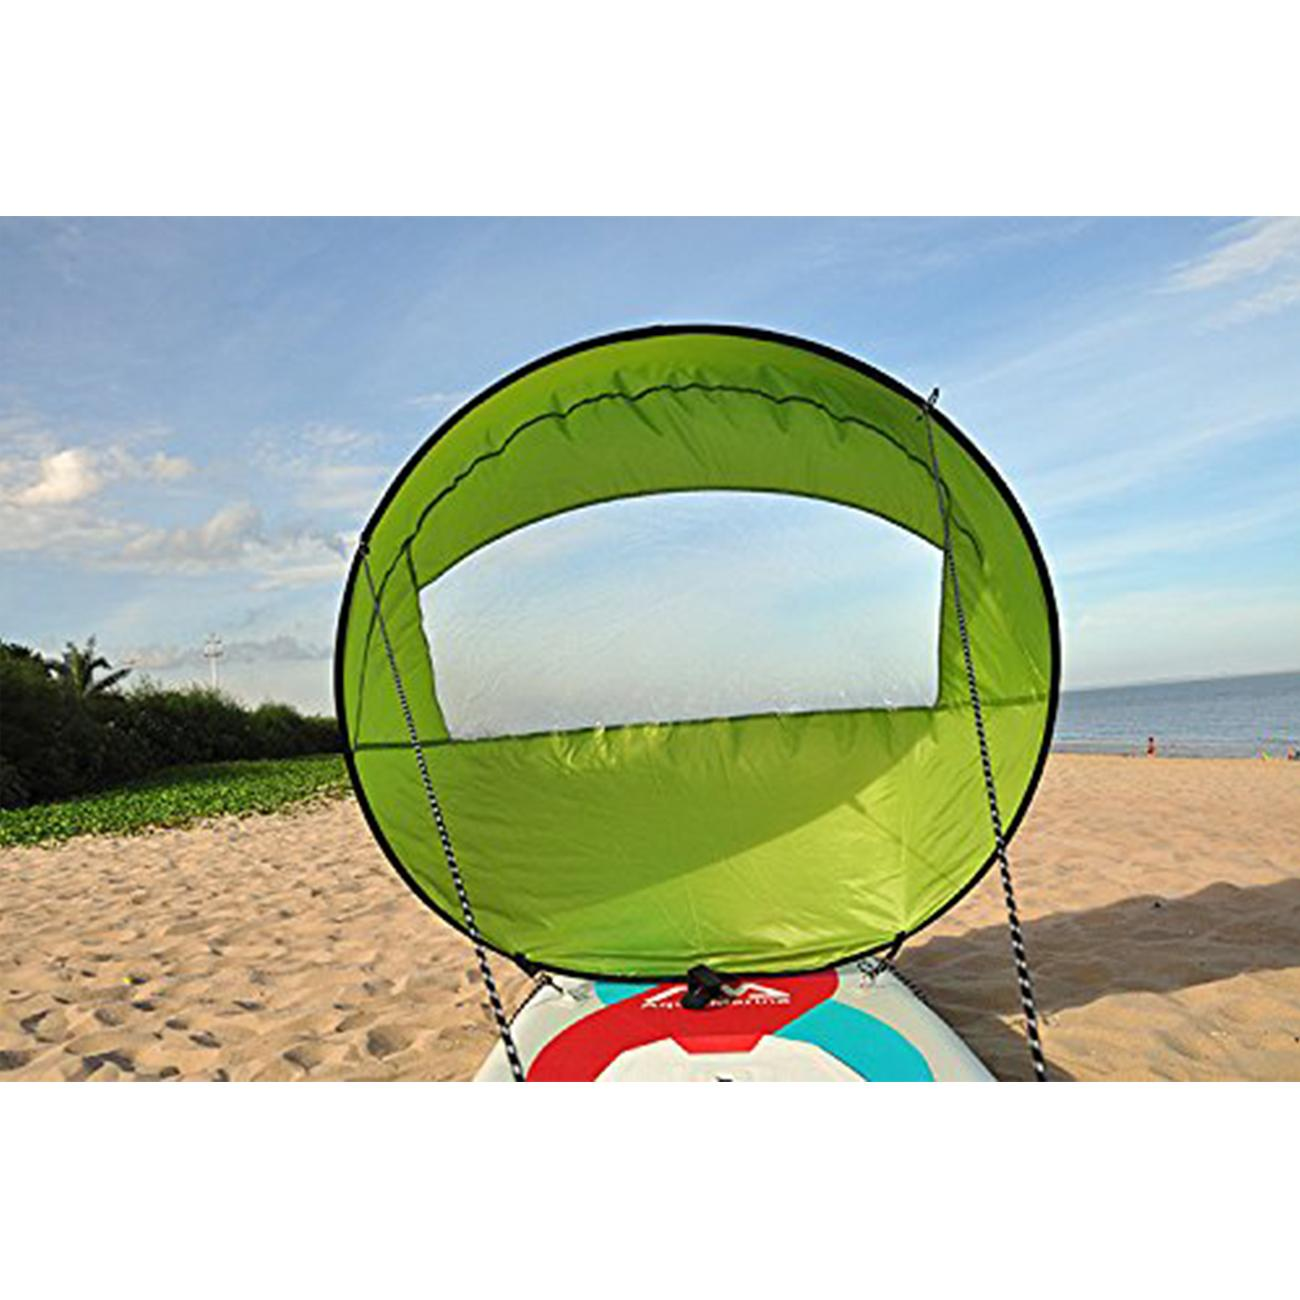 42 Windpaddle Kayak Wind Sail Kit Popup Board Downwind